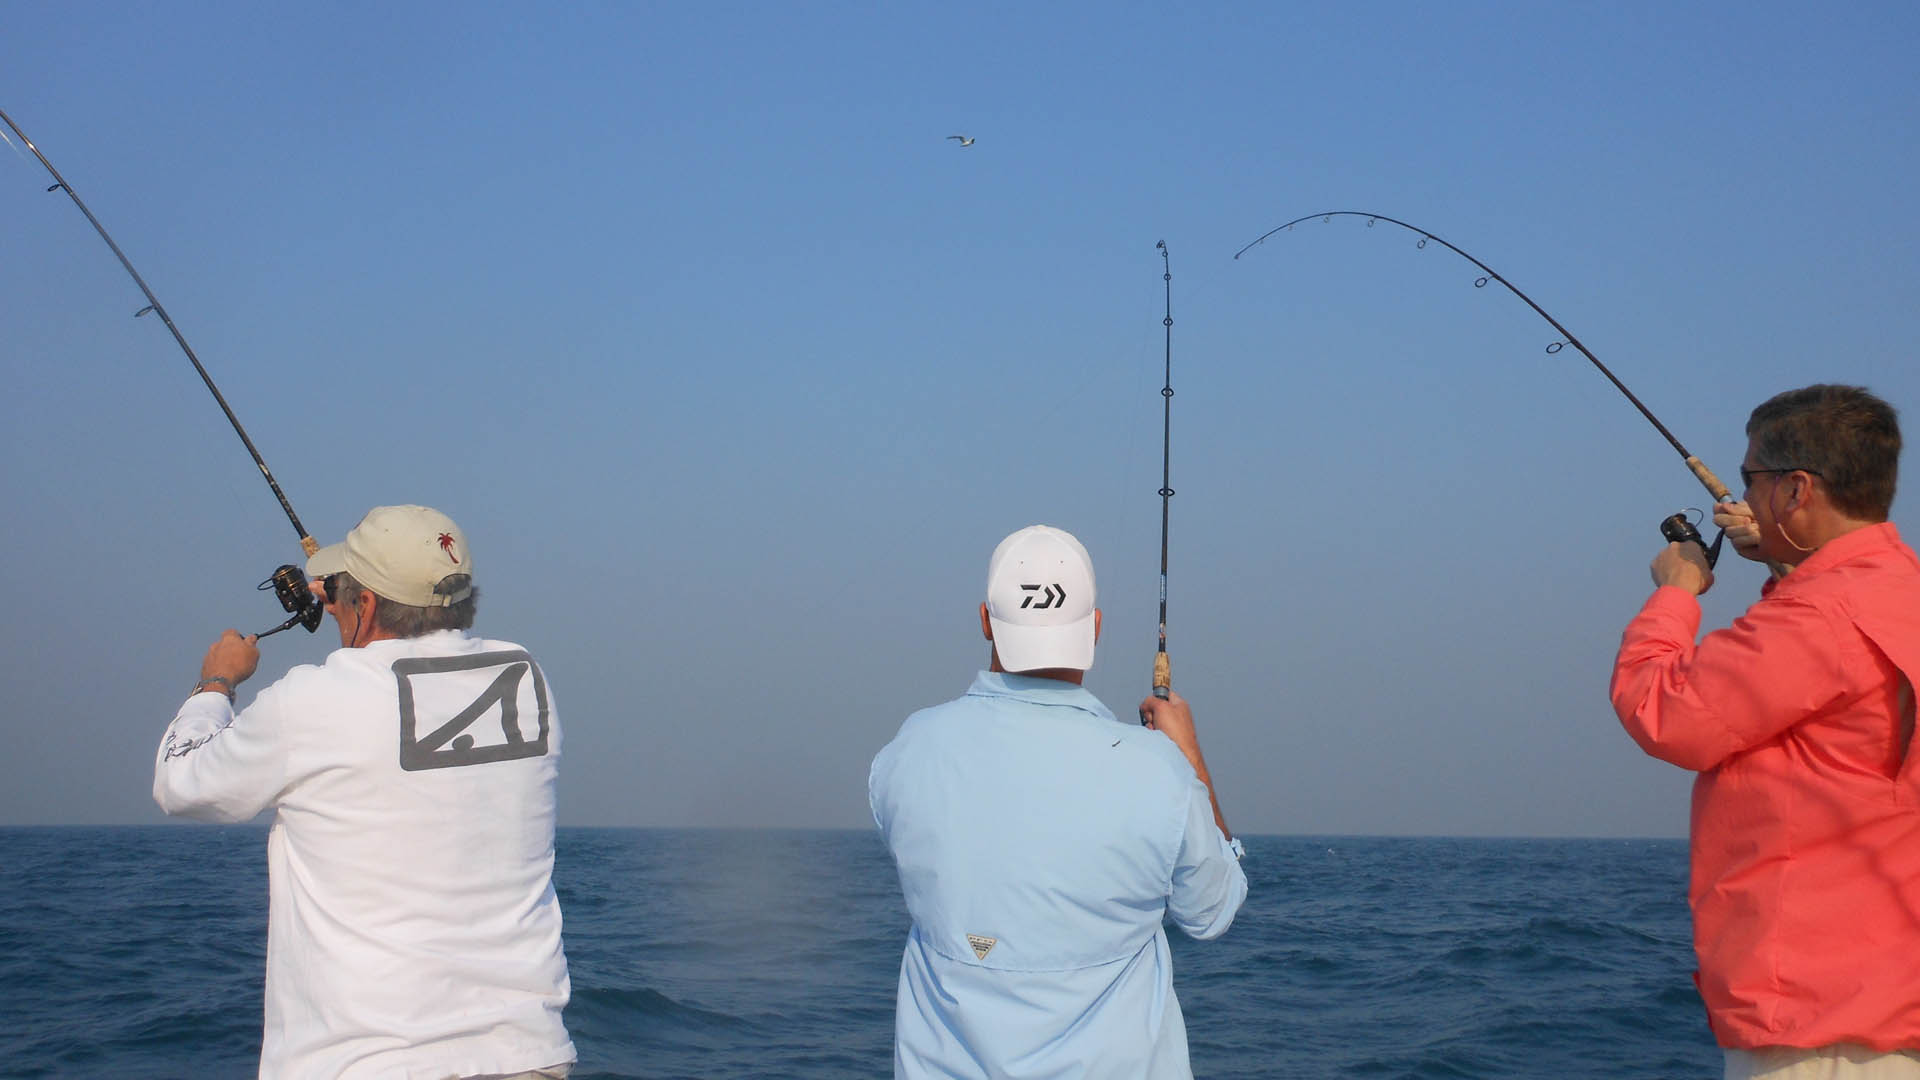 Three men deep sea tournament fishing in St. Petersburg, FL.